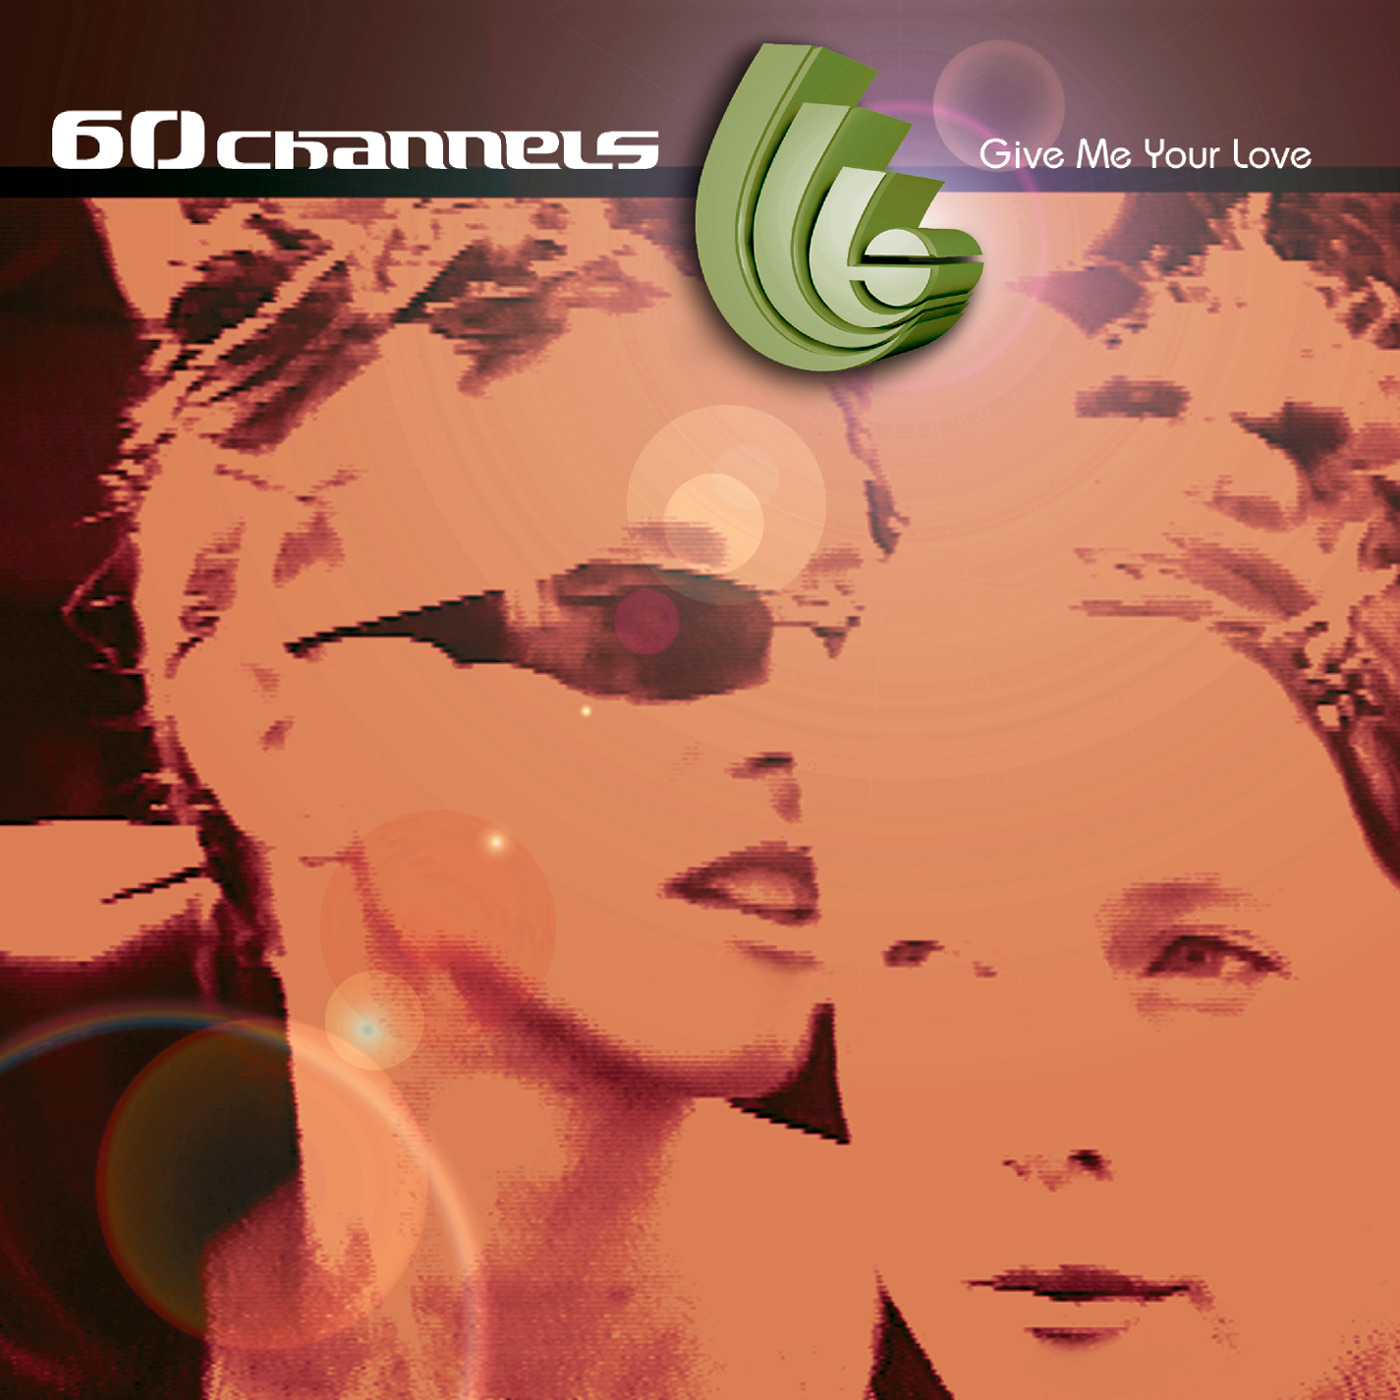 60 Channels - Give Me Your Love - EP